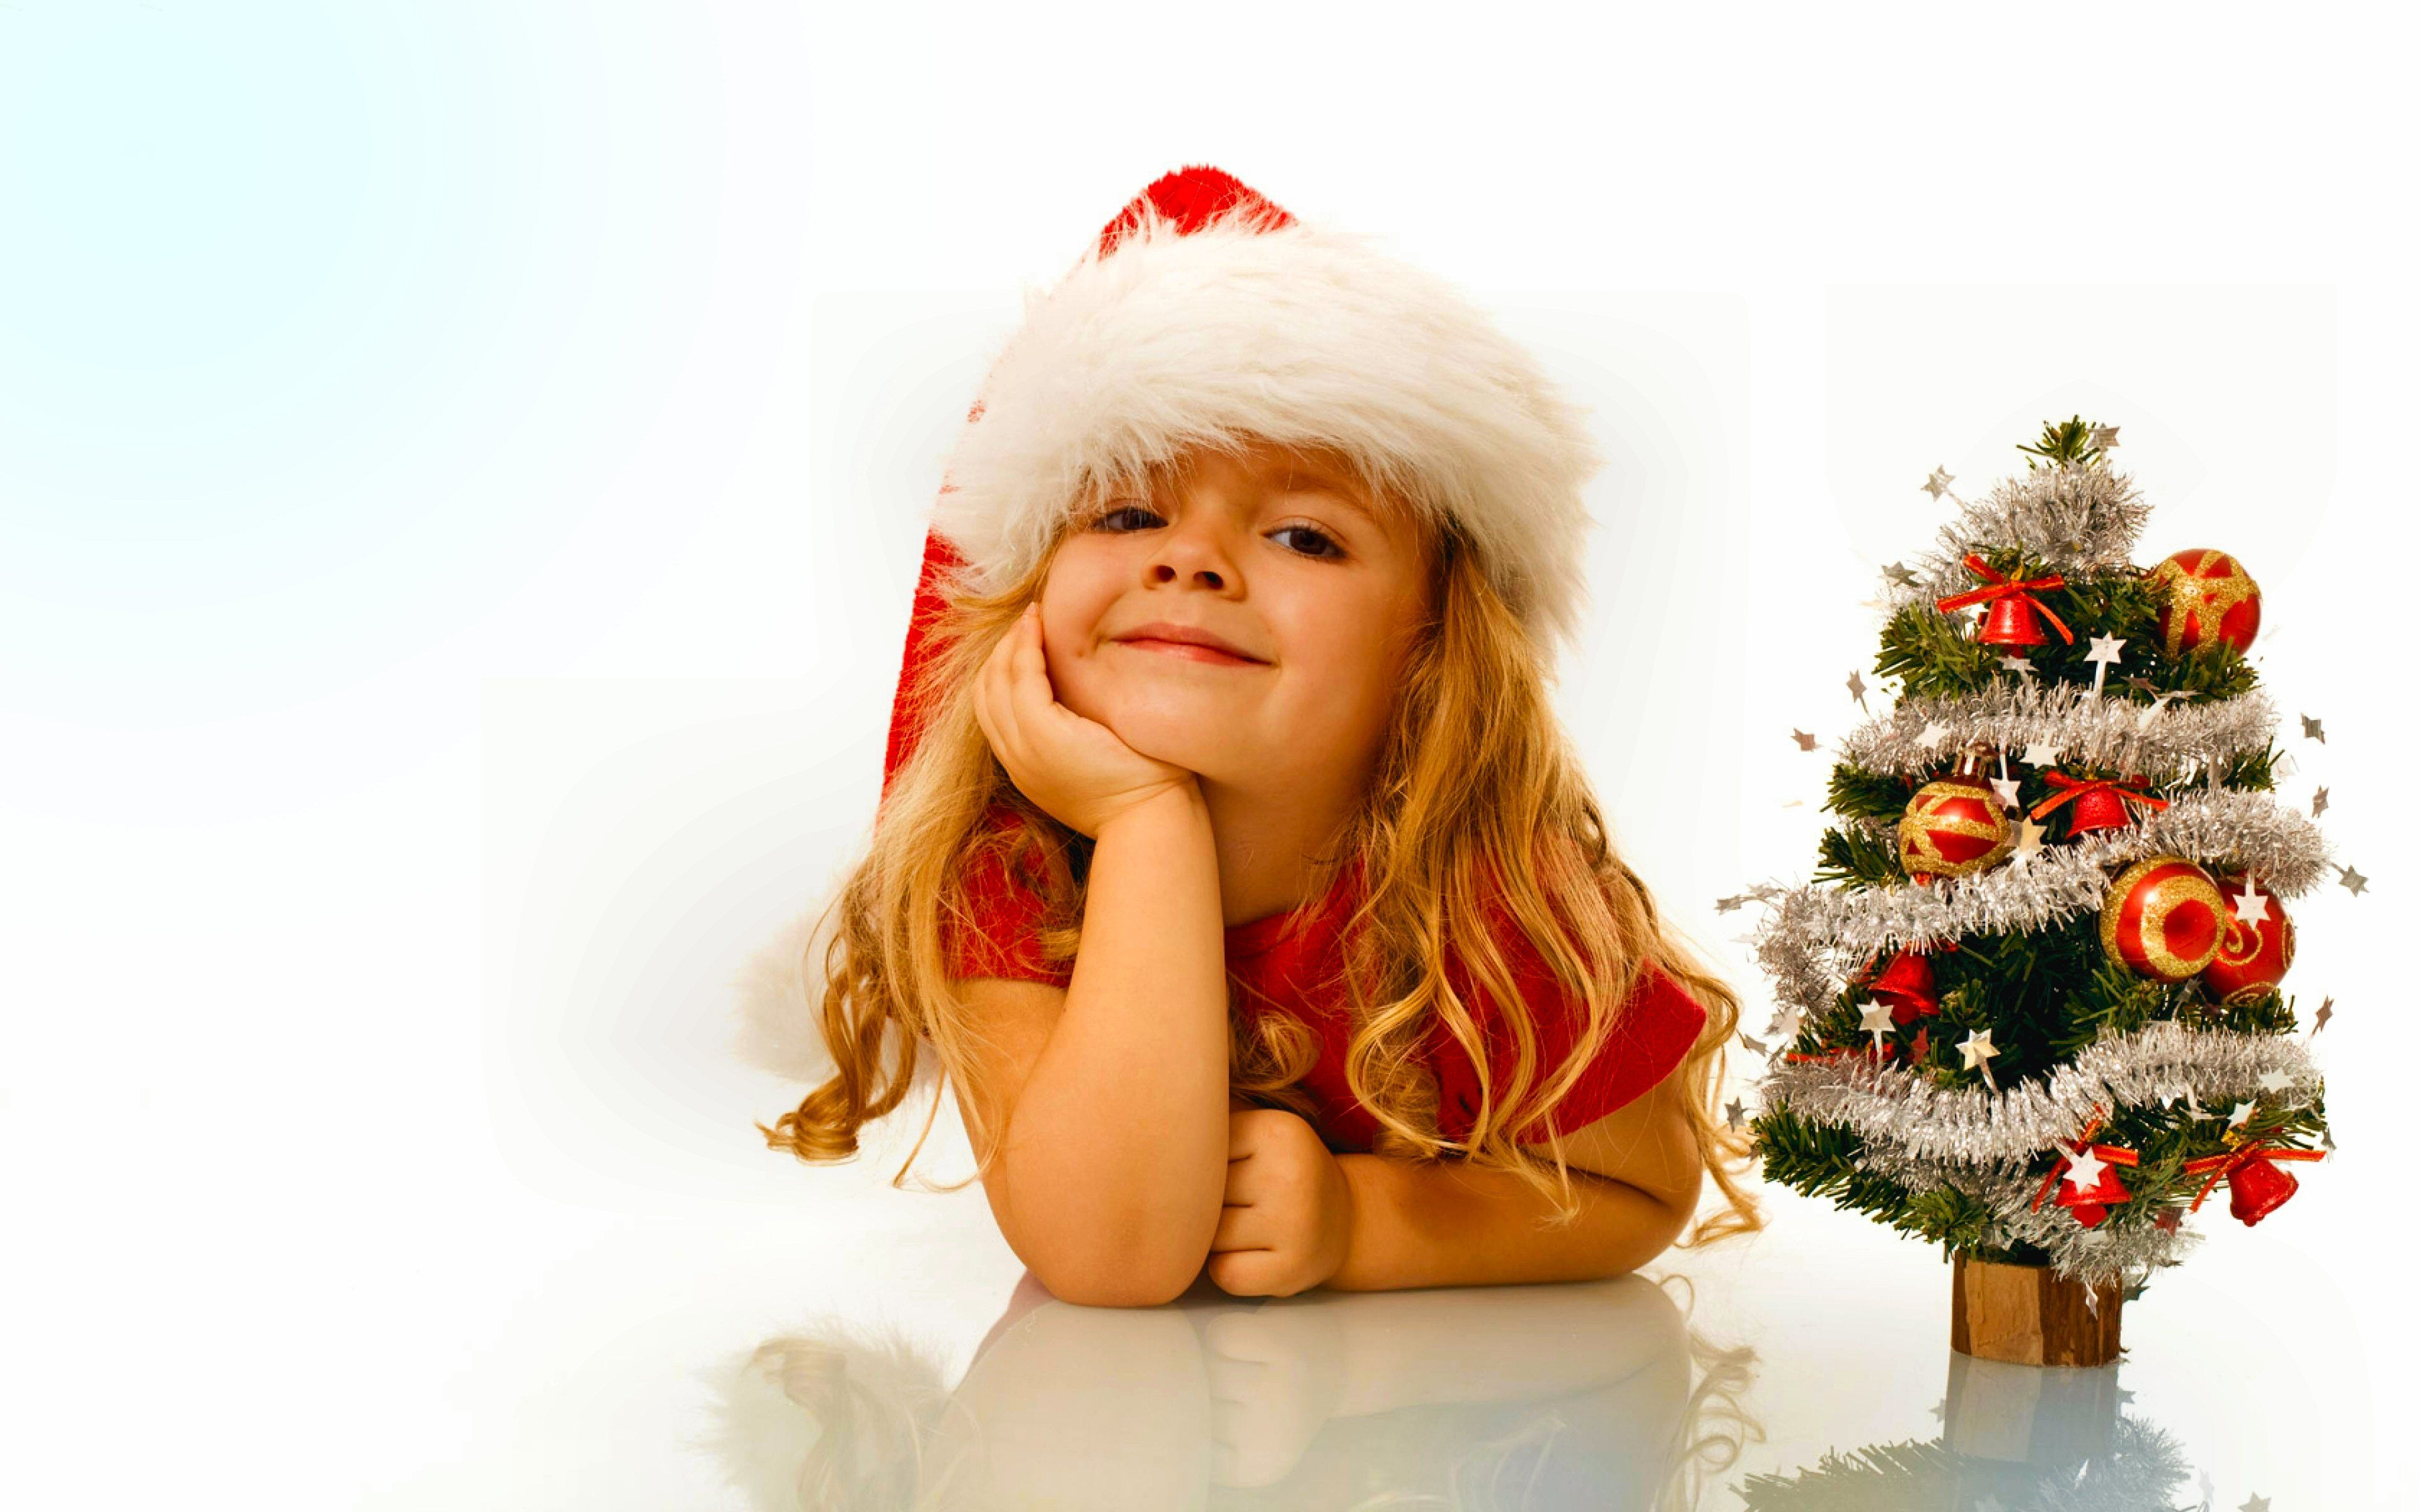 3840x2400 665 Christmas Tree HD Wallpapers   Background Images - Wallpaper Abyss